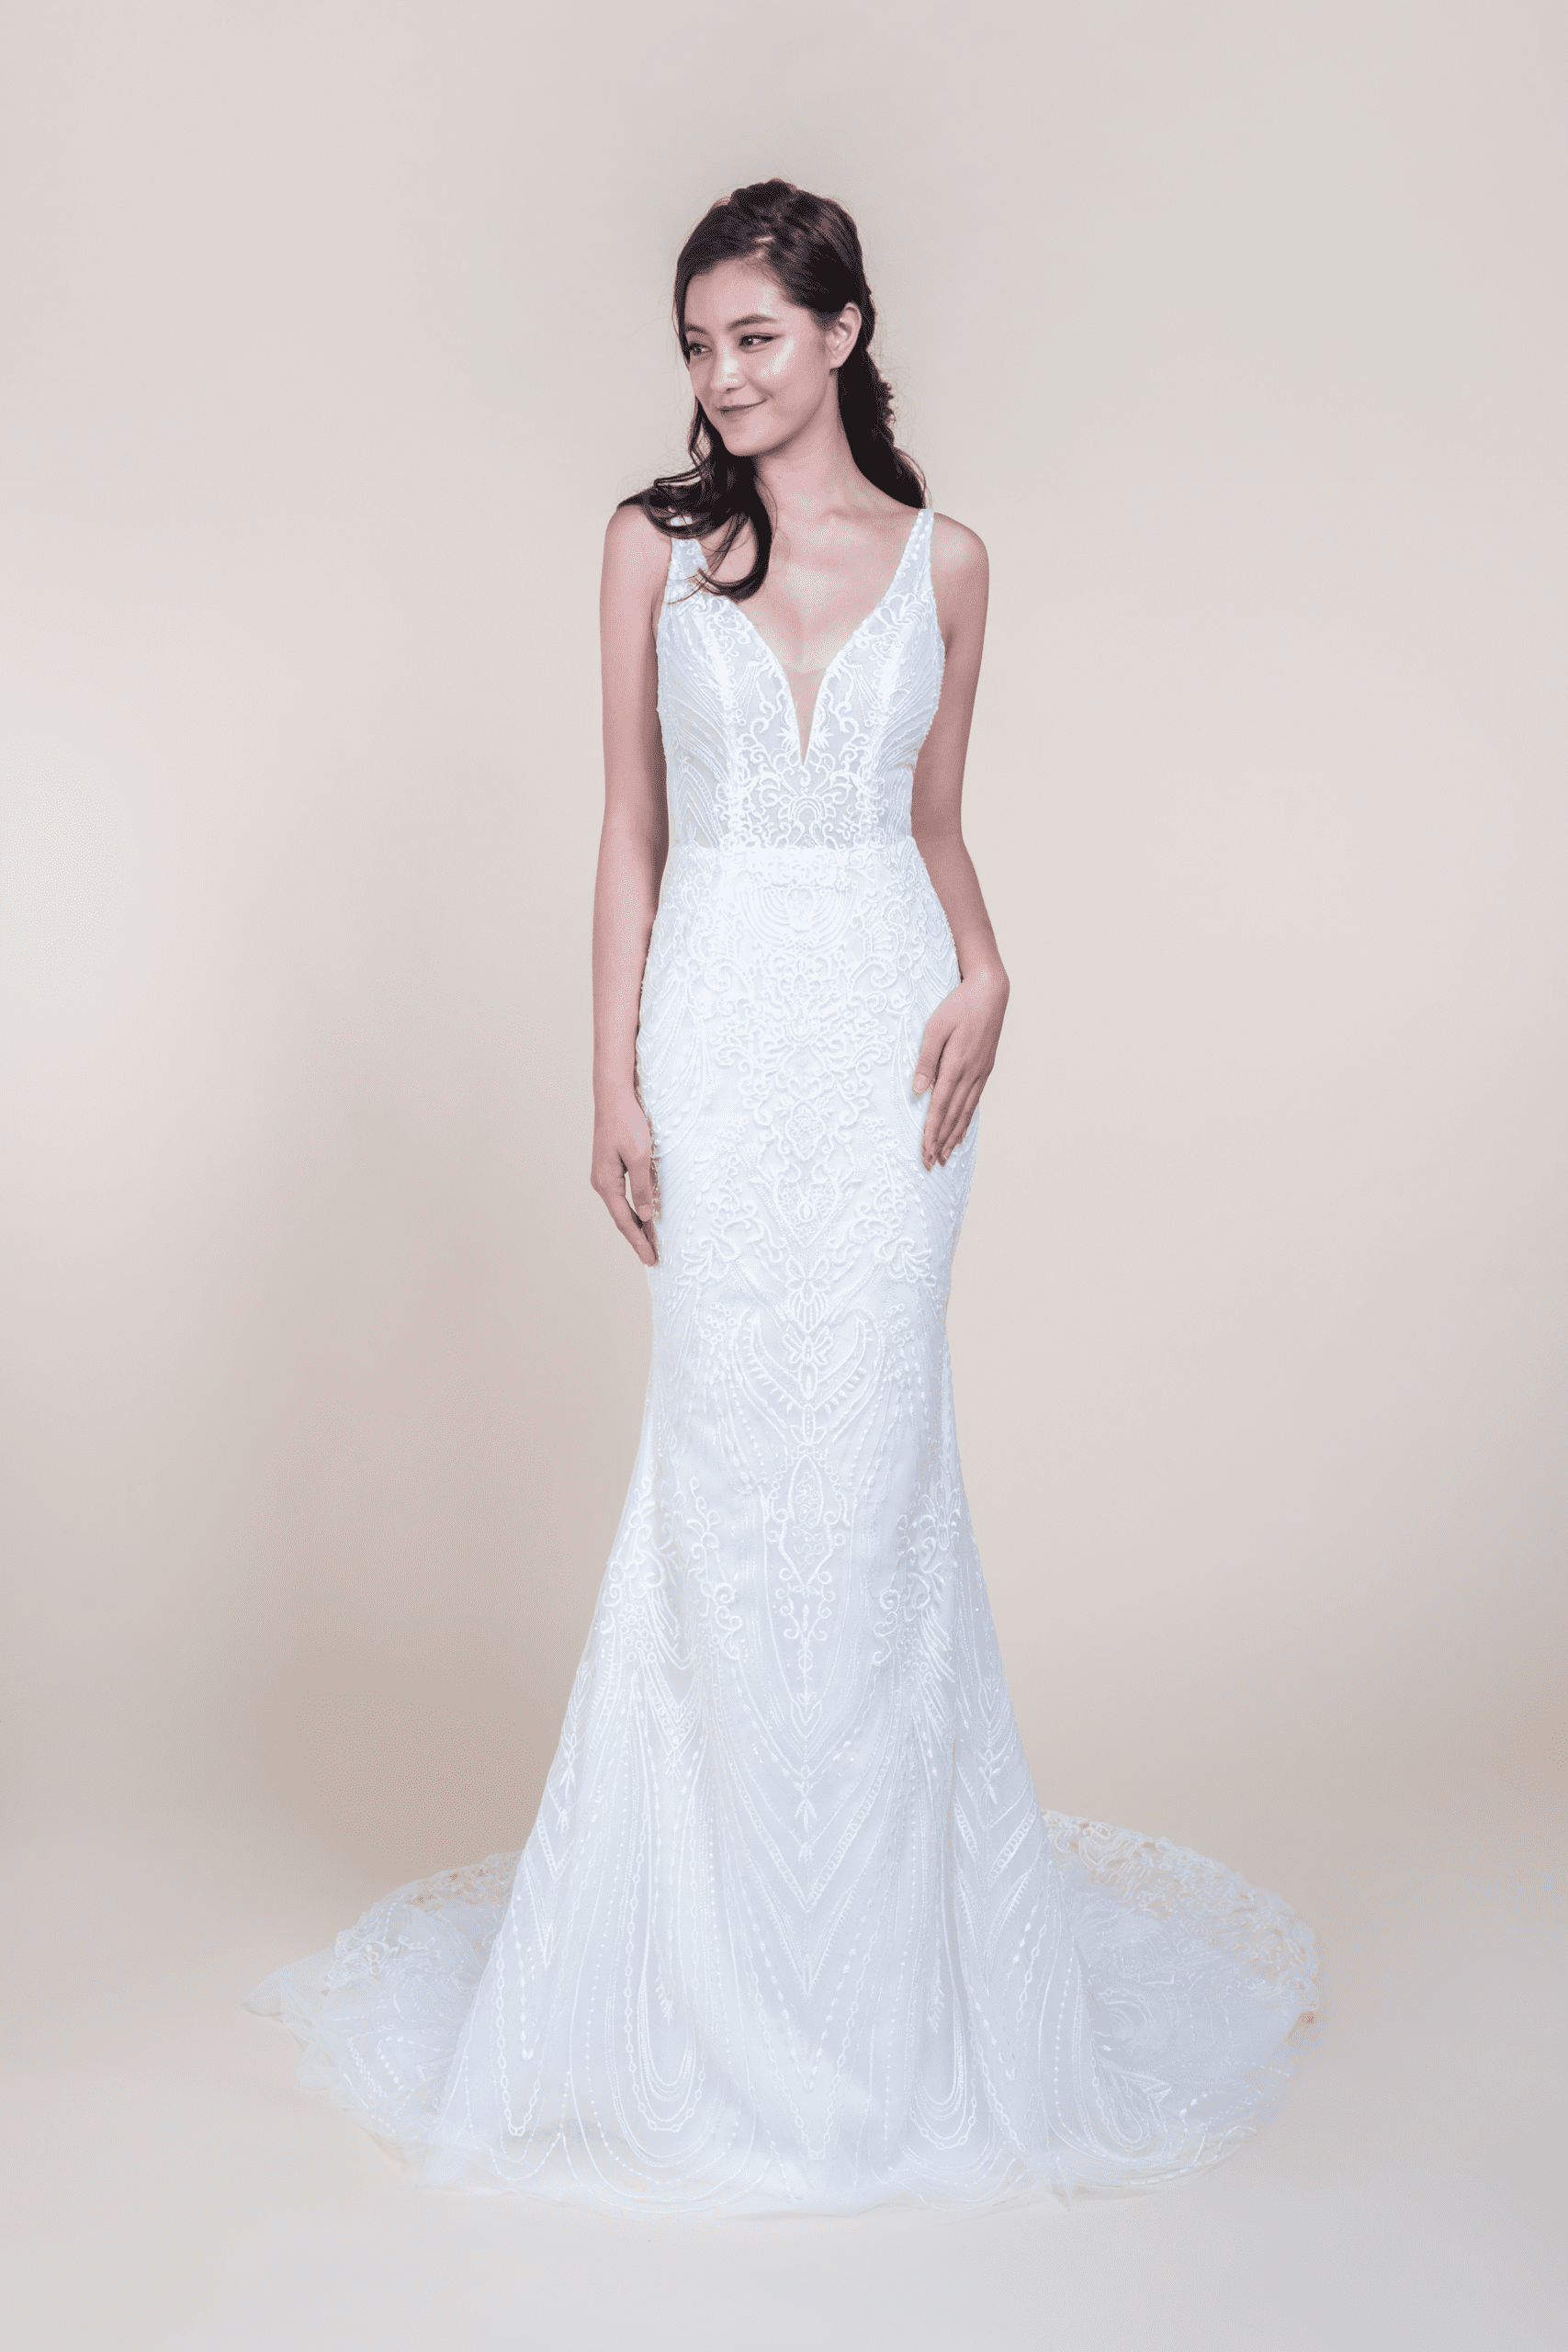 Velda-affordable Wedding Gown for rent in Singapore